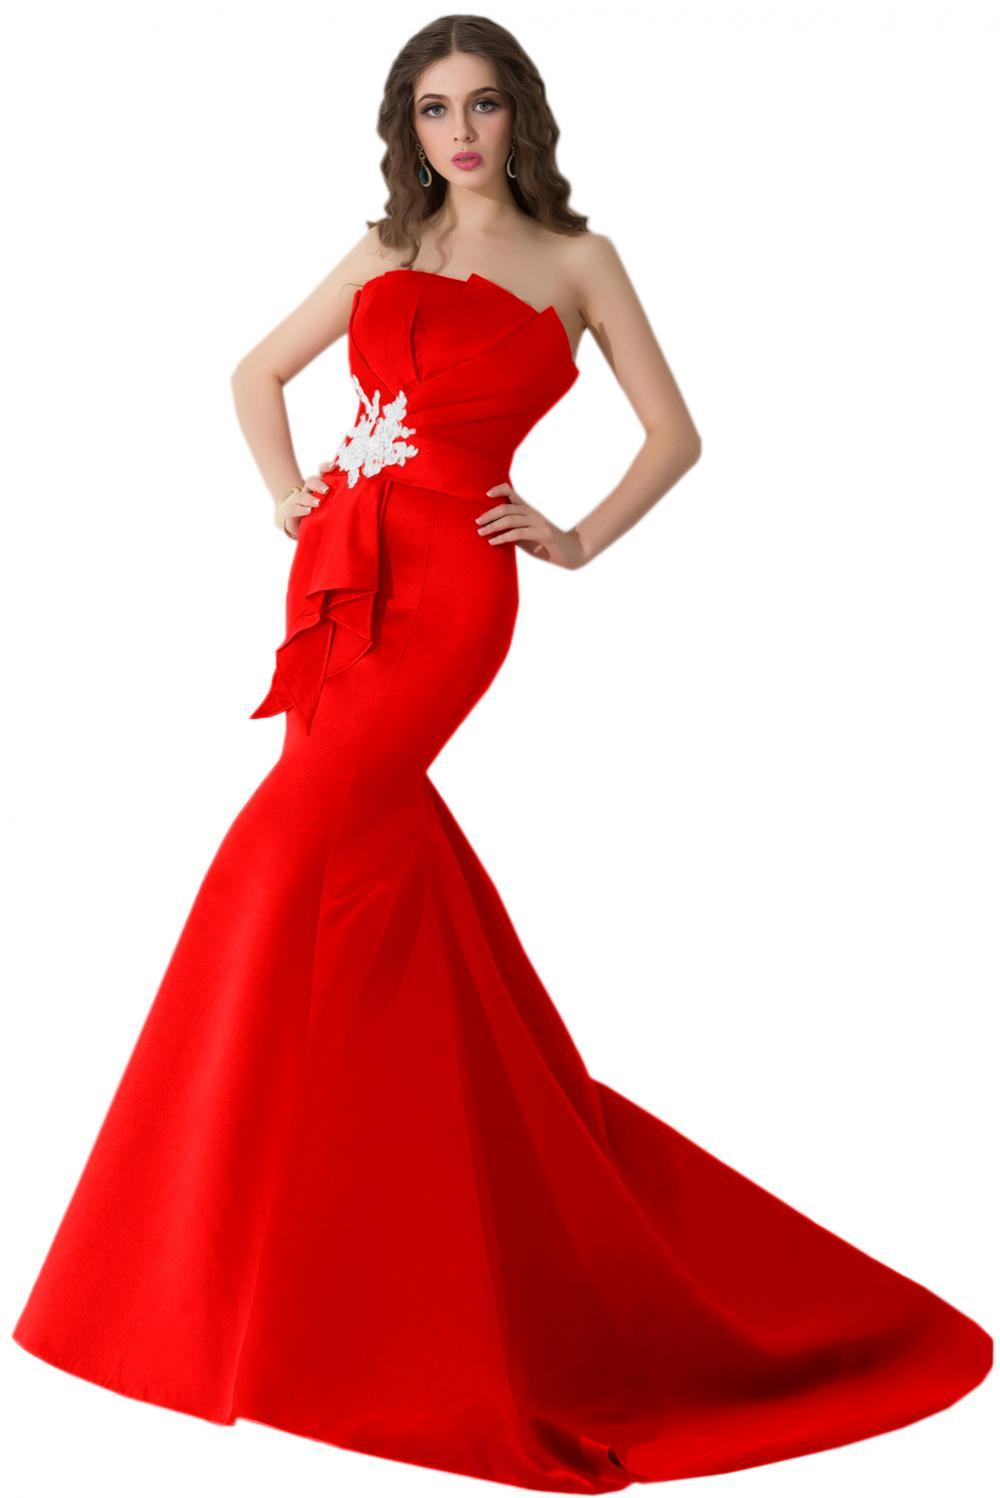 Sheath/Column Strapless Floor Length Satin Evening Dress with Beads